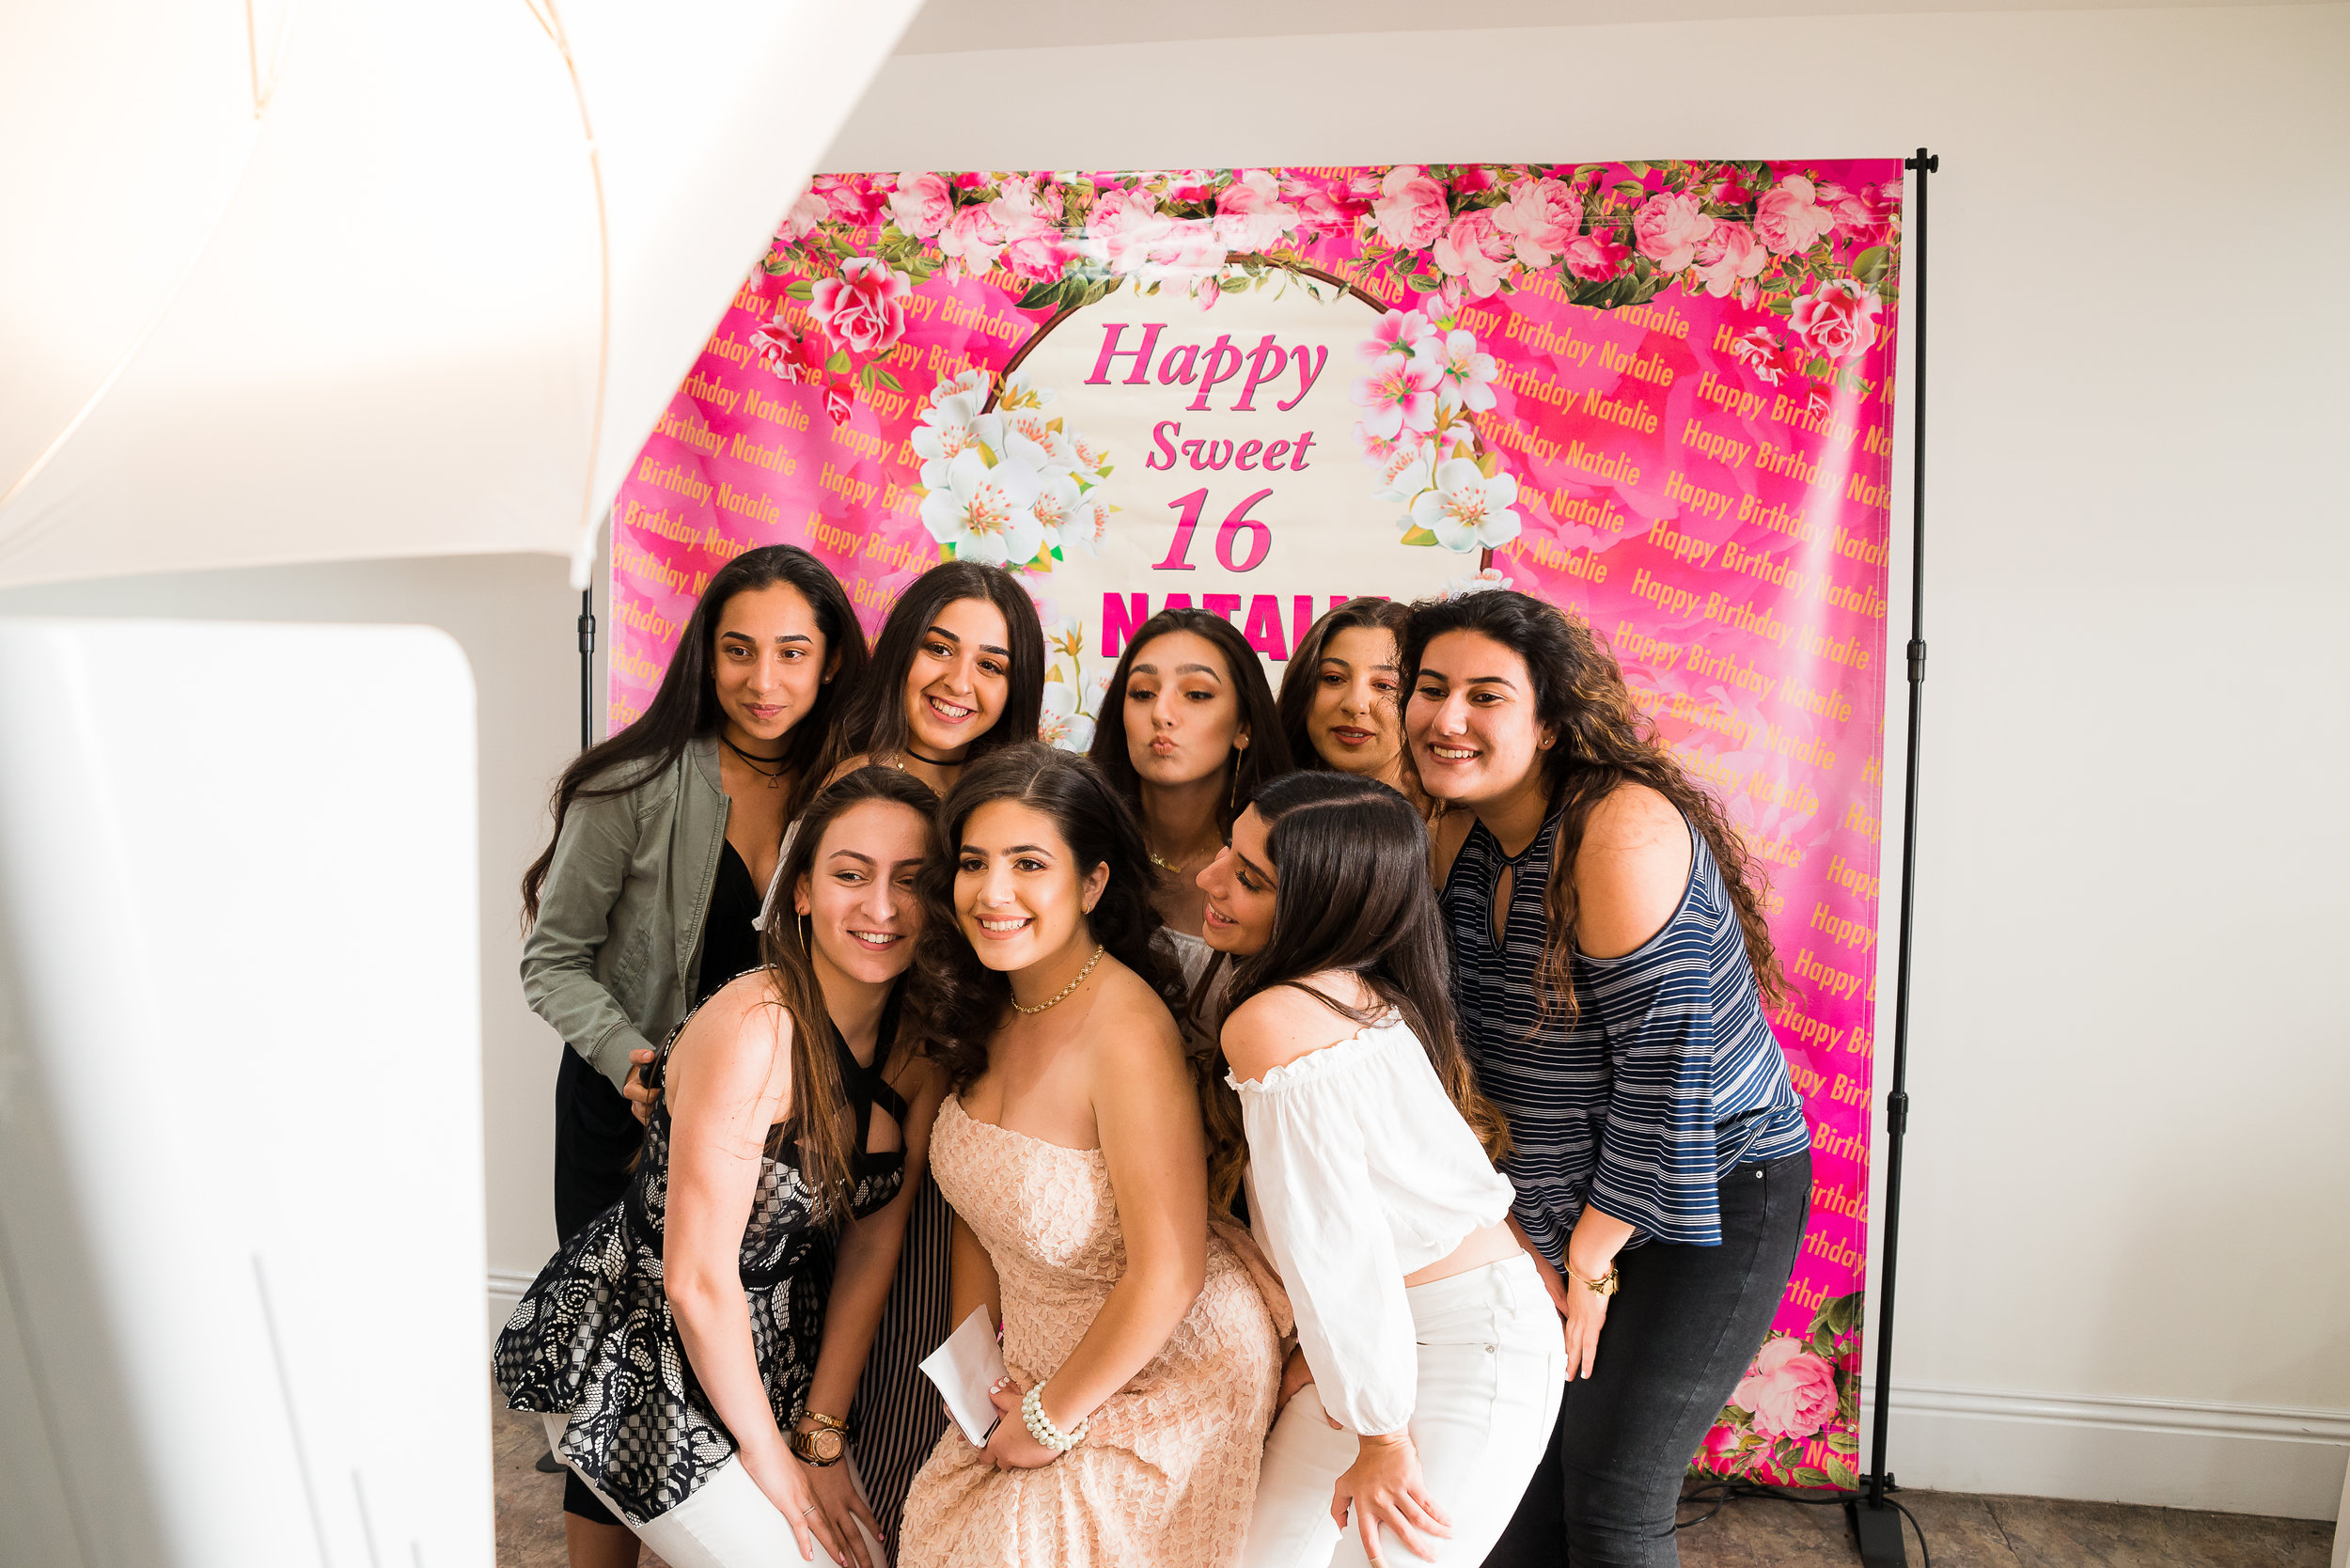 Los Angeles Pasadena based photo booth rental for weddings and events